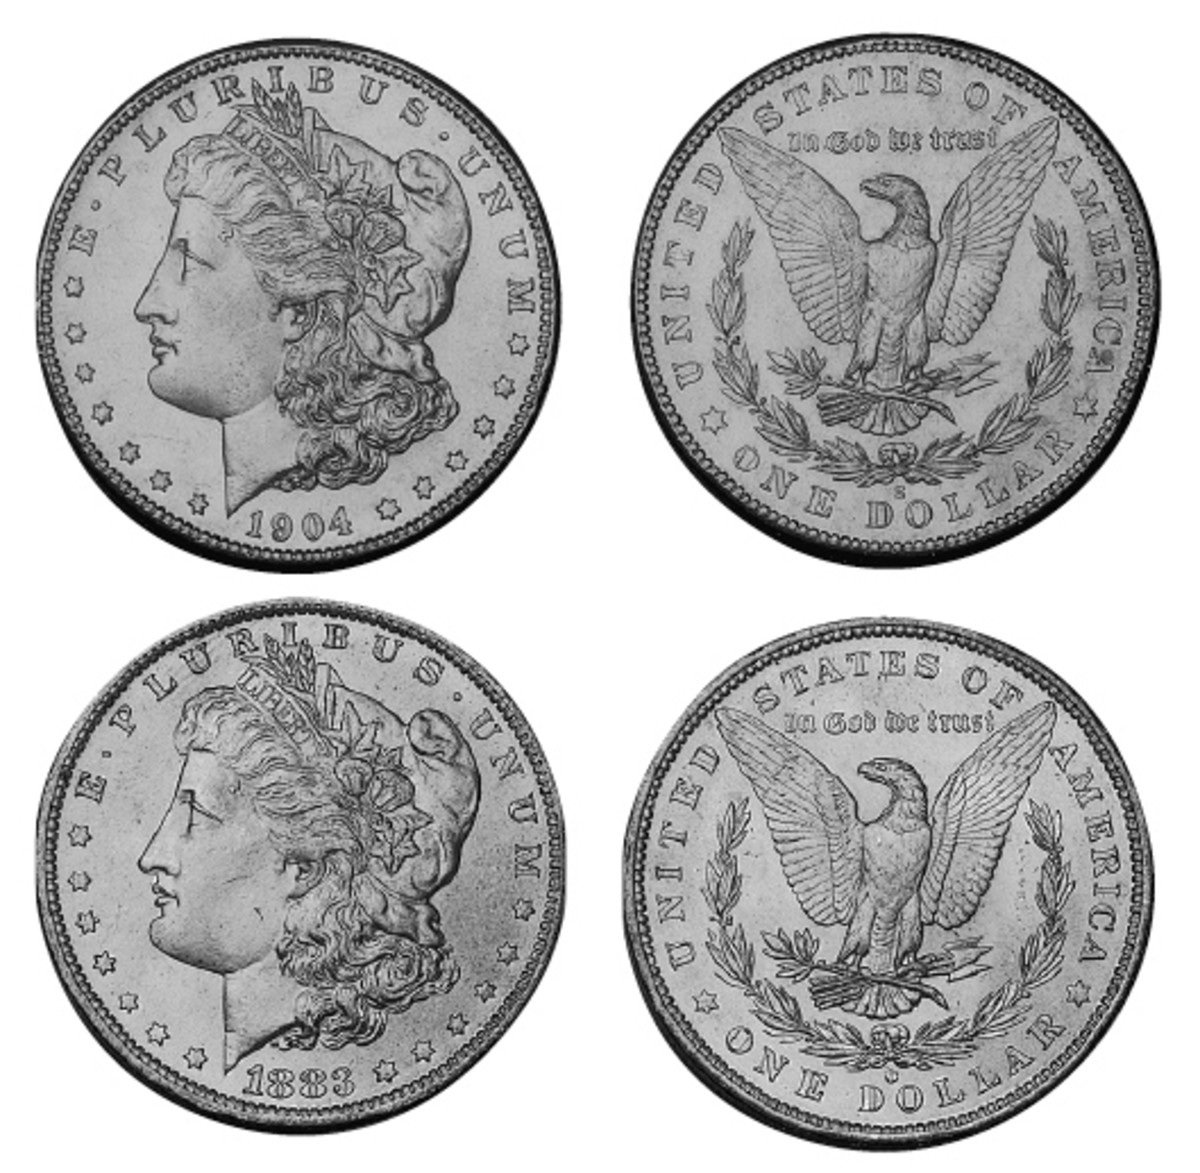 The author discovered examples of both 1904-S and 1883-O Morgan silver dollars in junk boxes.